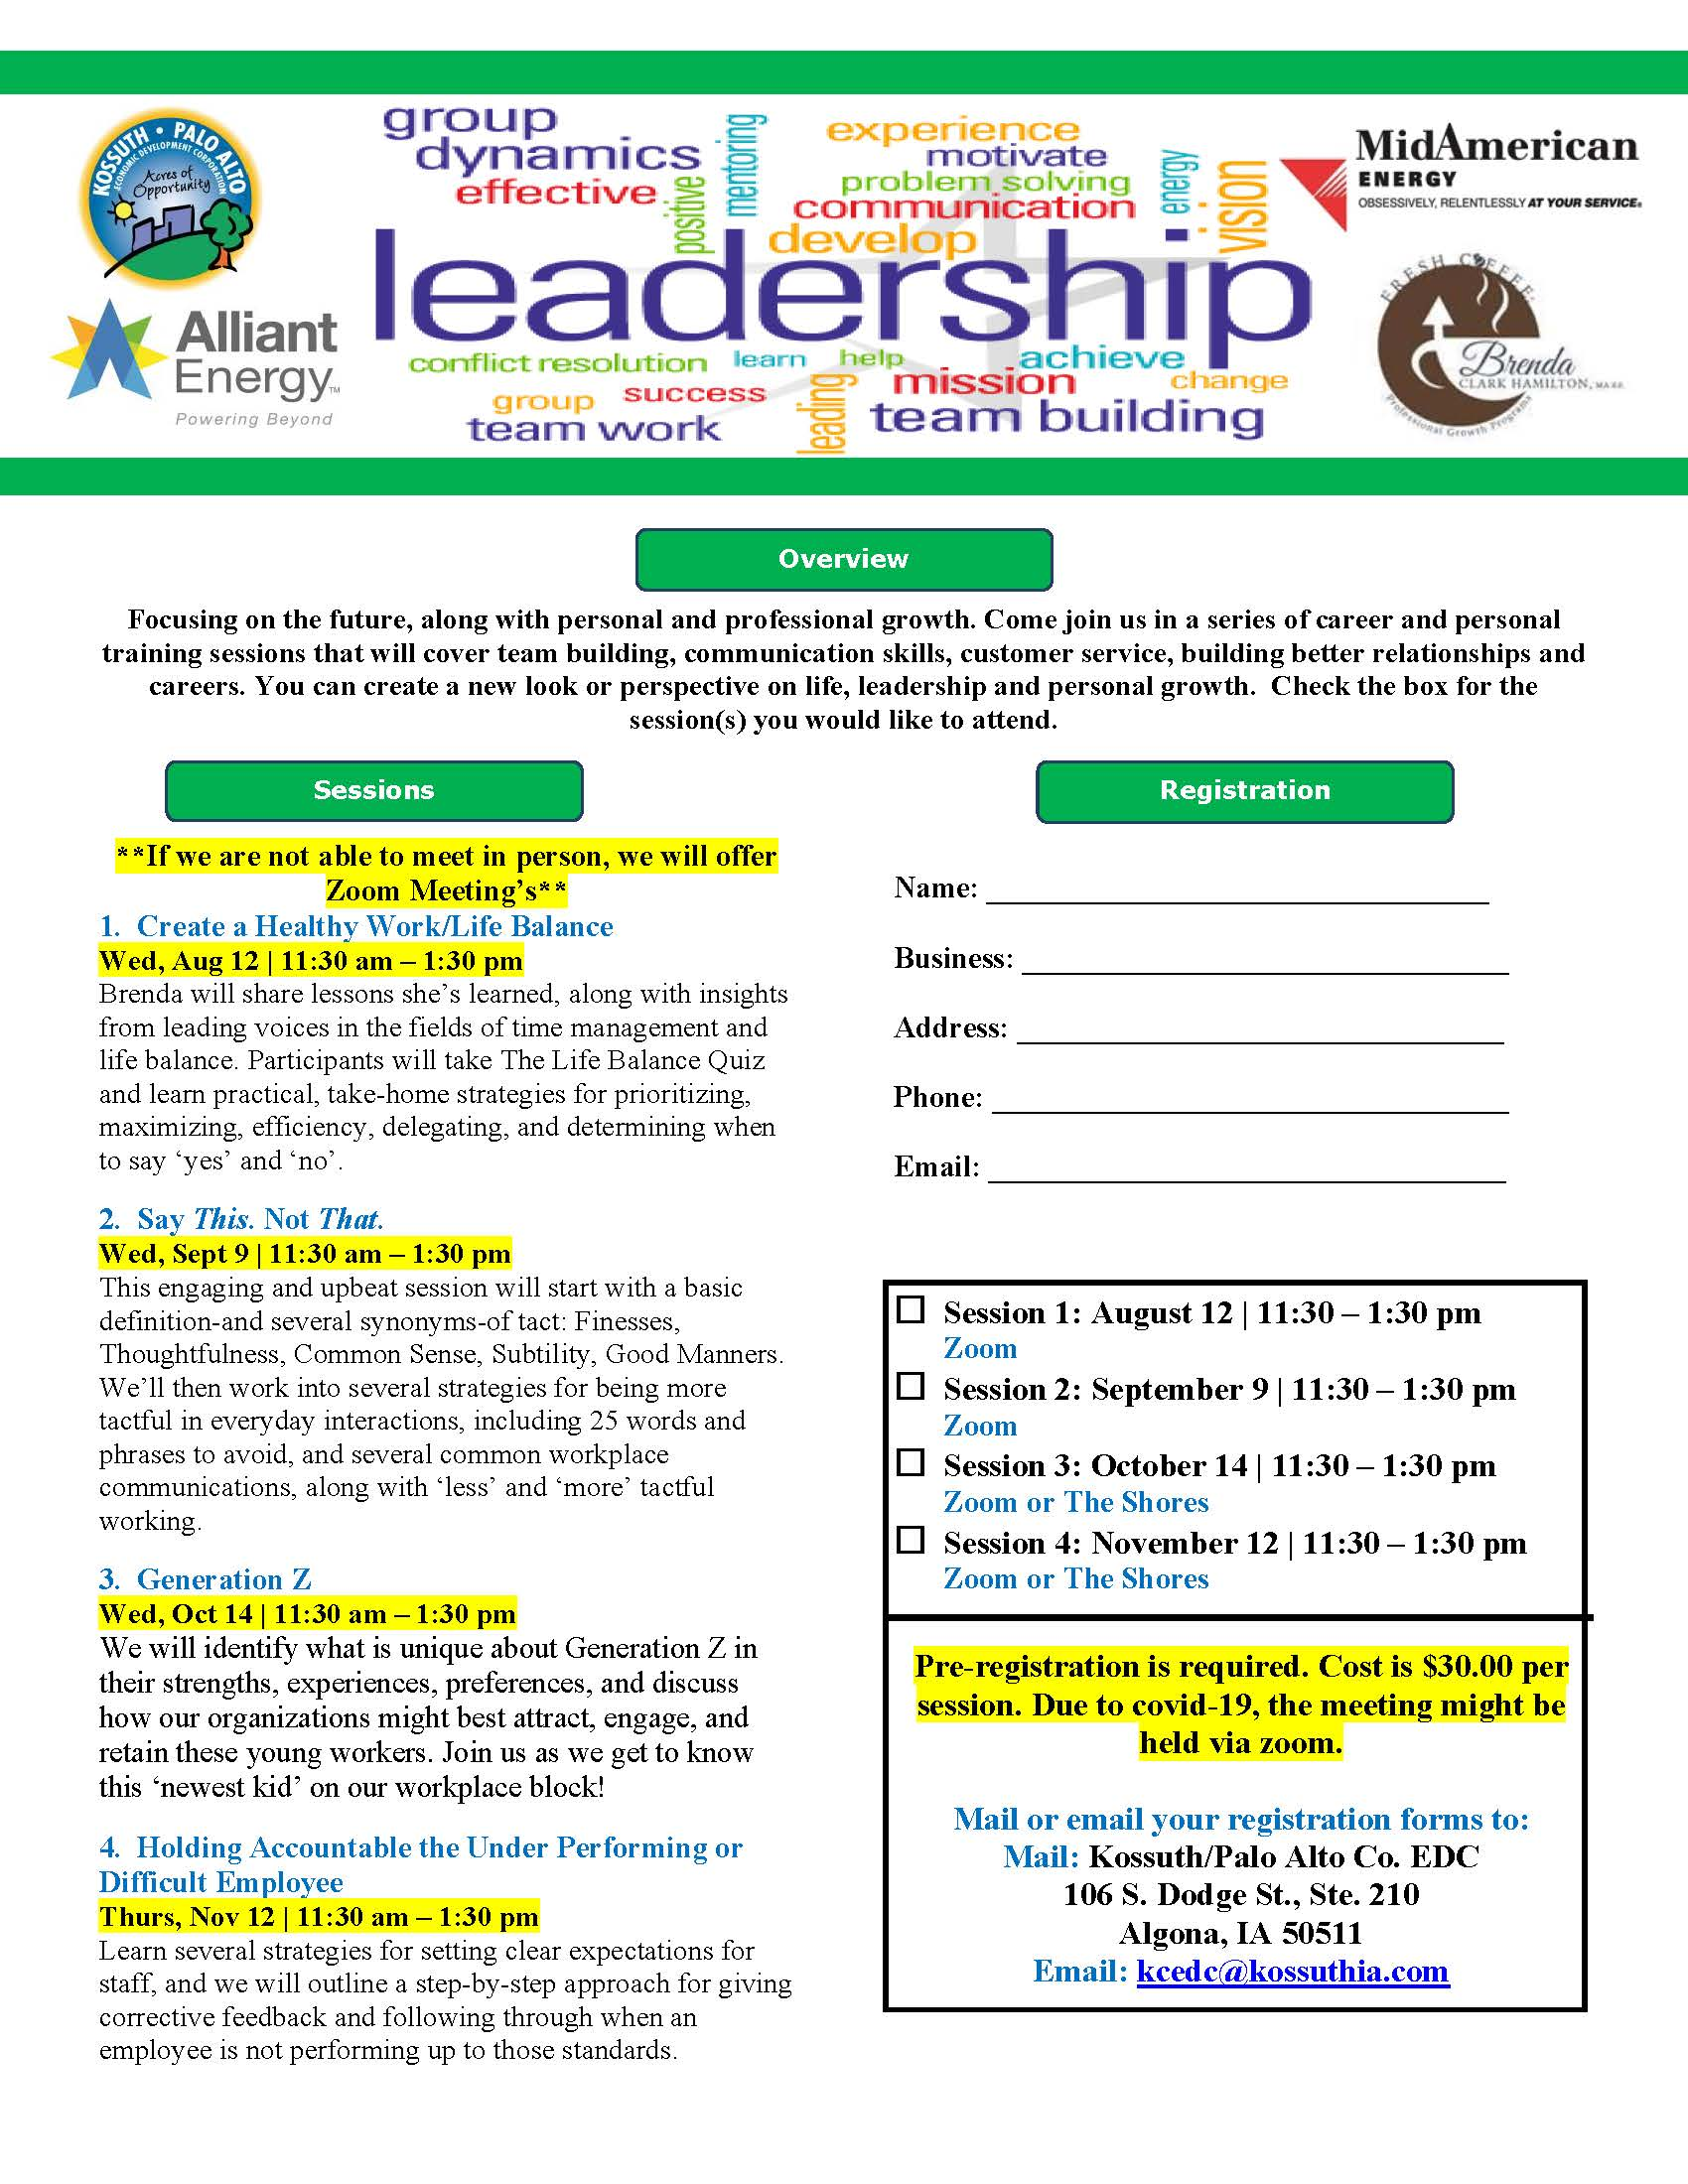 Leadership Flier Registration